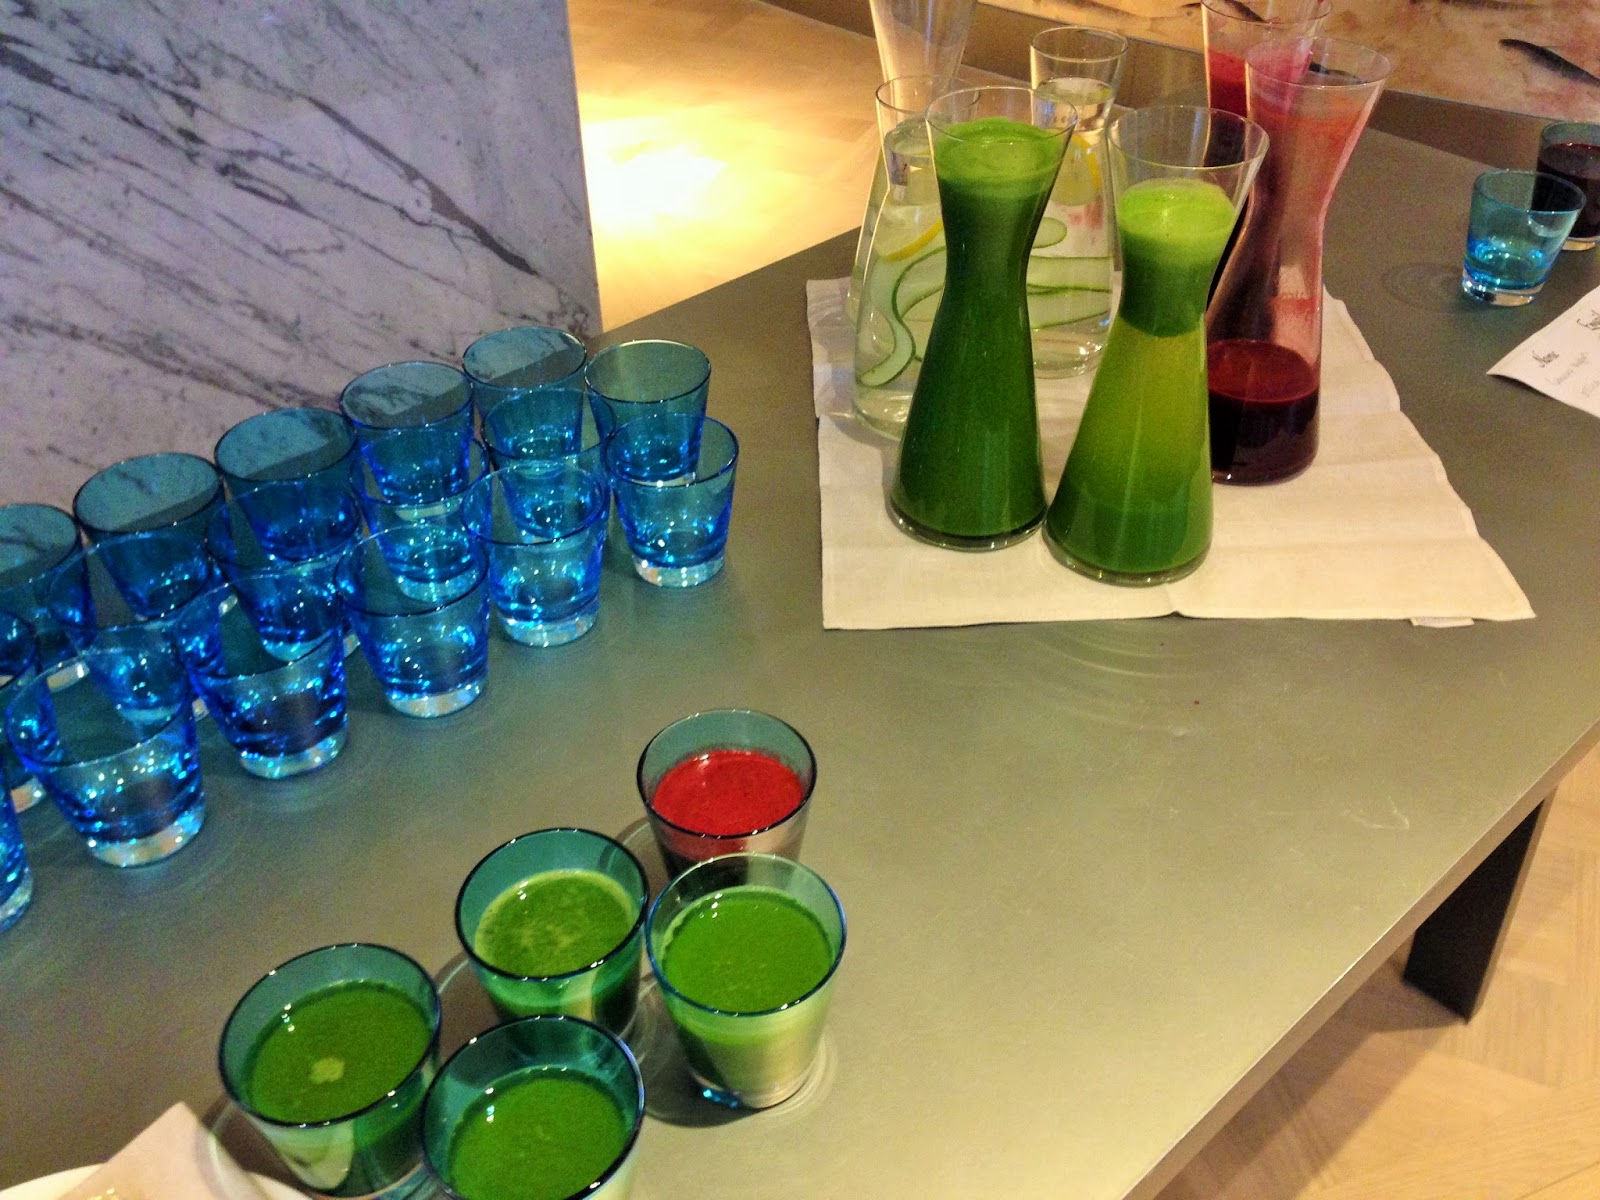 Superfood smoothies at London Fashion Week